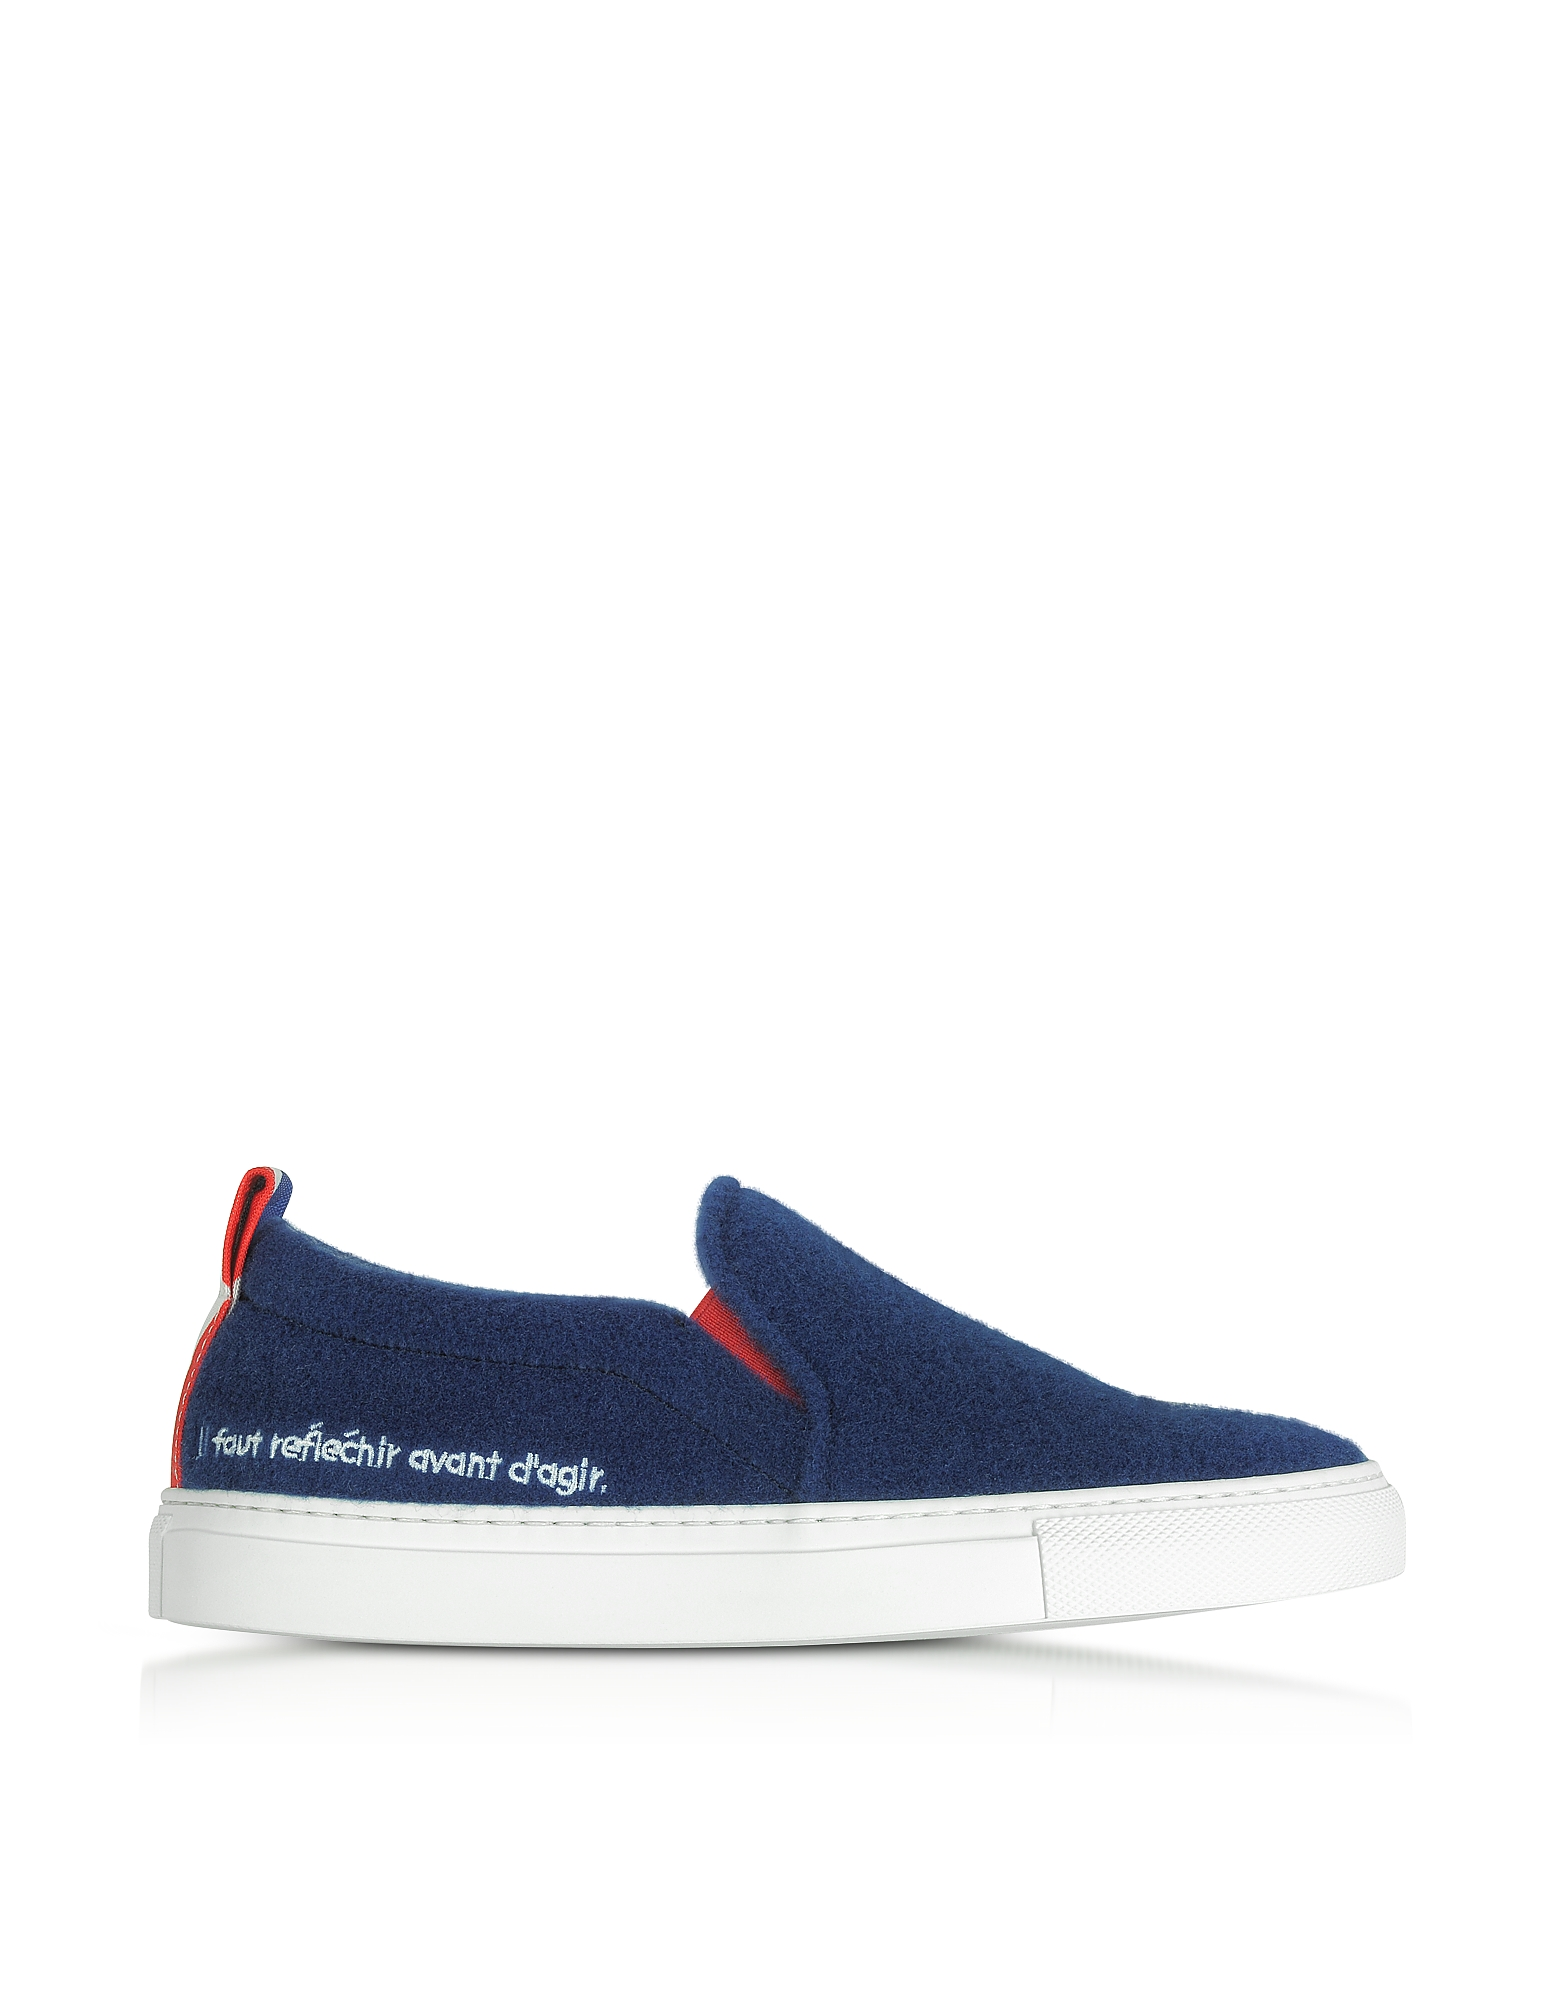 Joshua Sanders Shoes, Blue Paris Slip On Women's Sneakers